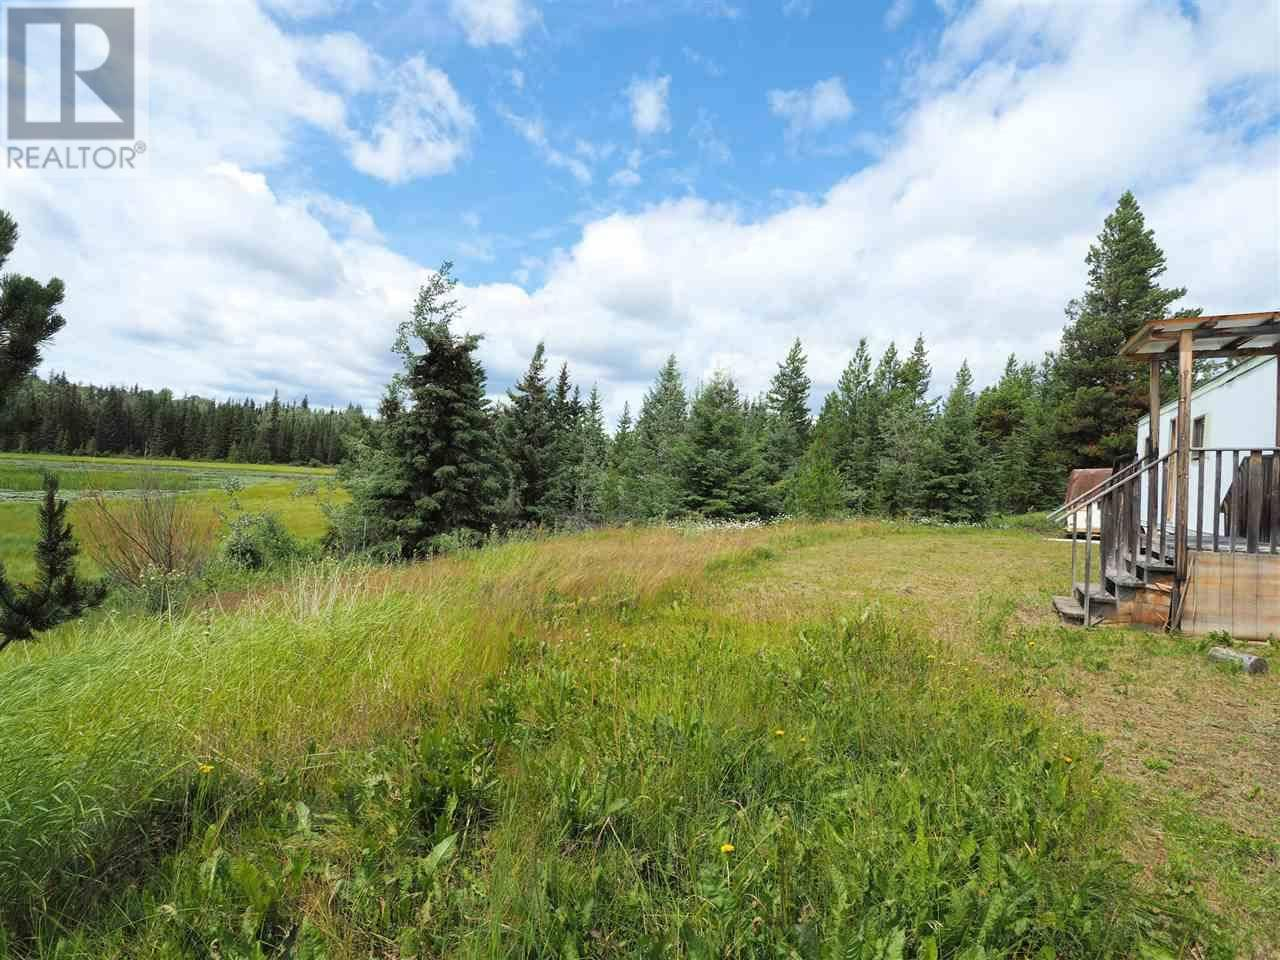 Residential property for sale at 5532 24 Hy Lone Butte British Columbia - MLS: R2419528